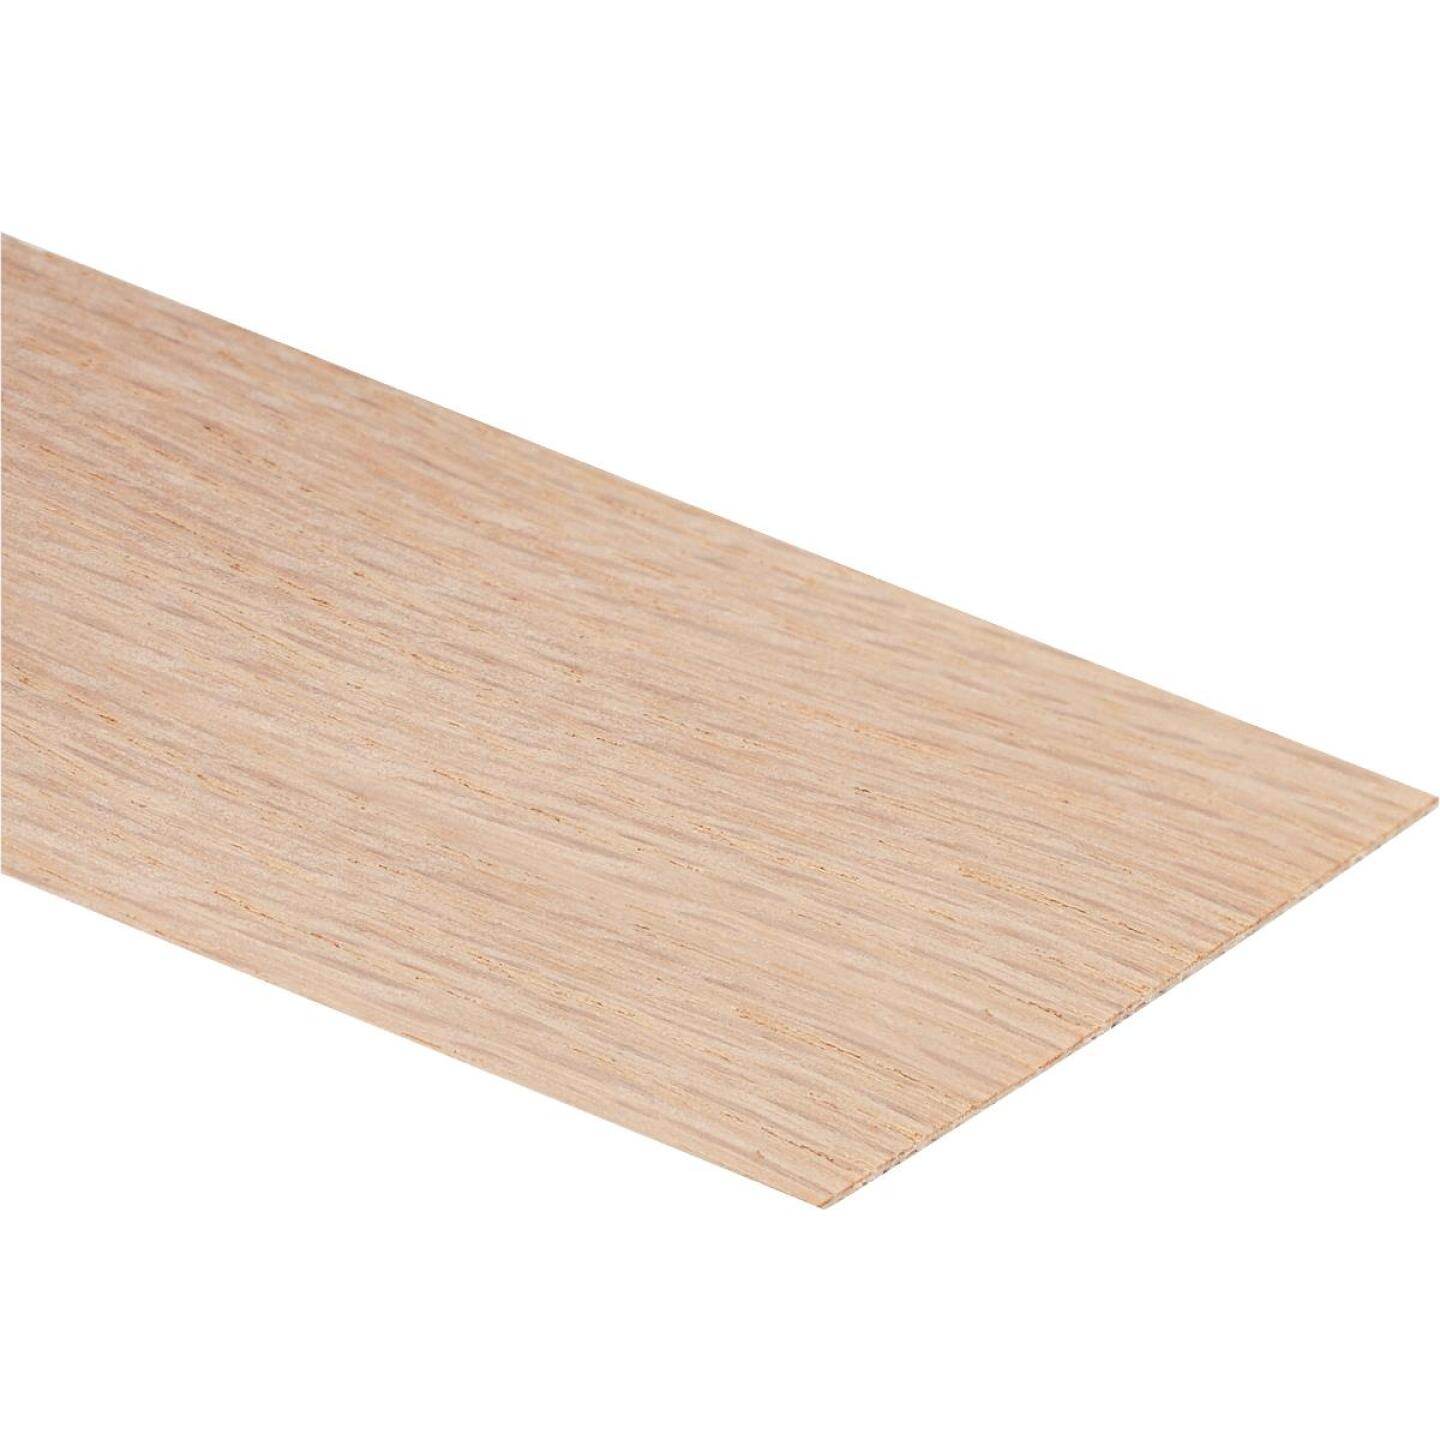 Cloverdale Band-It 2 In. x 8 Ft. Red Oak Wood Veneer Edging Image 1